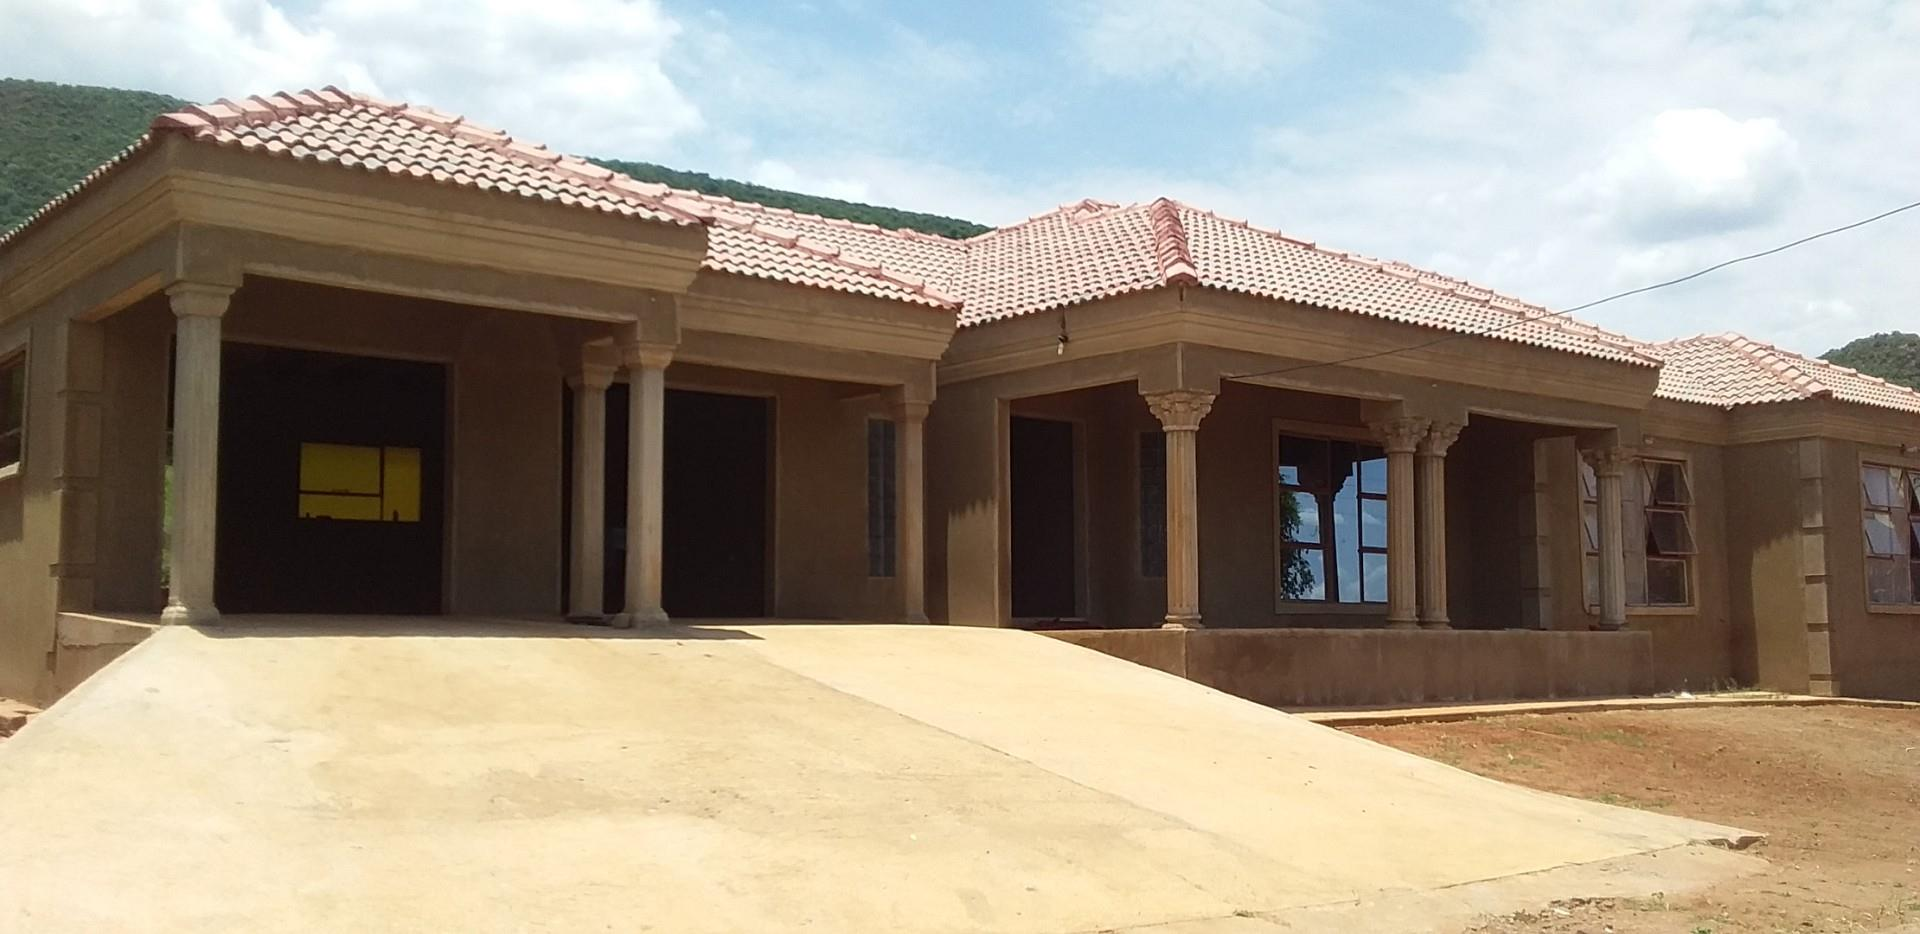 4 bedroom house for sale in dzanani  remax™ of southern